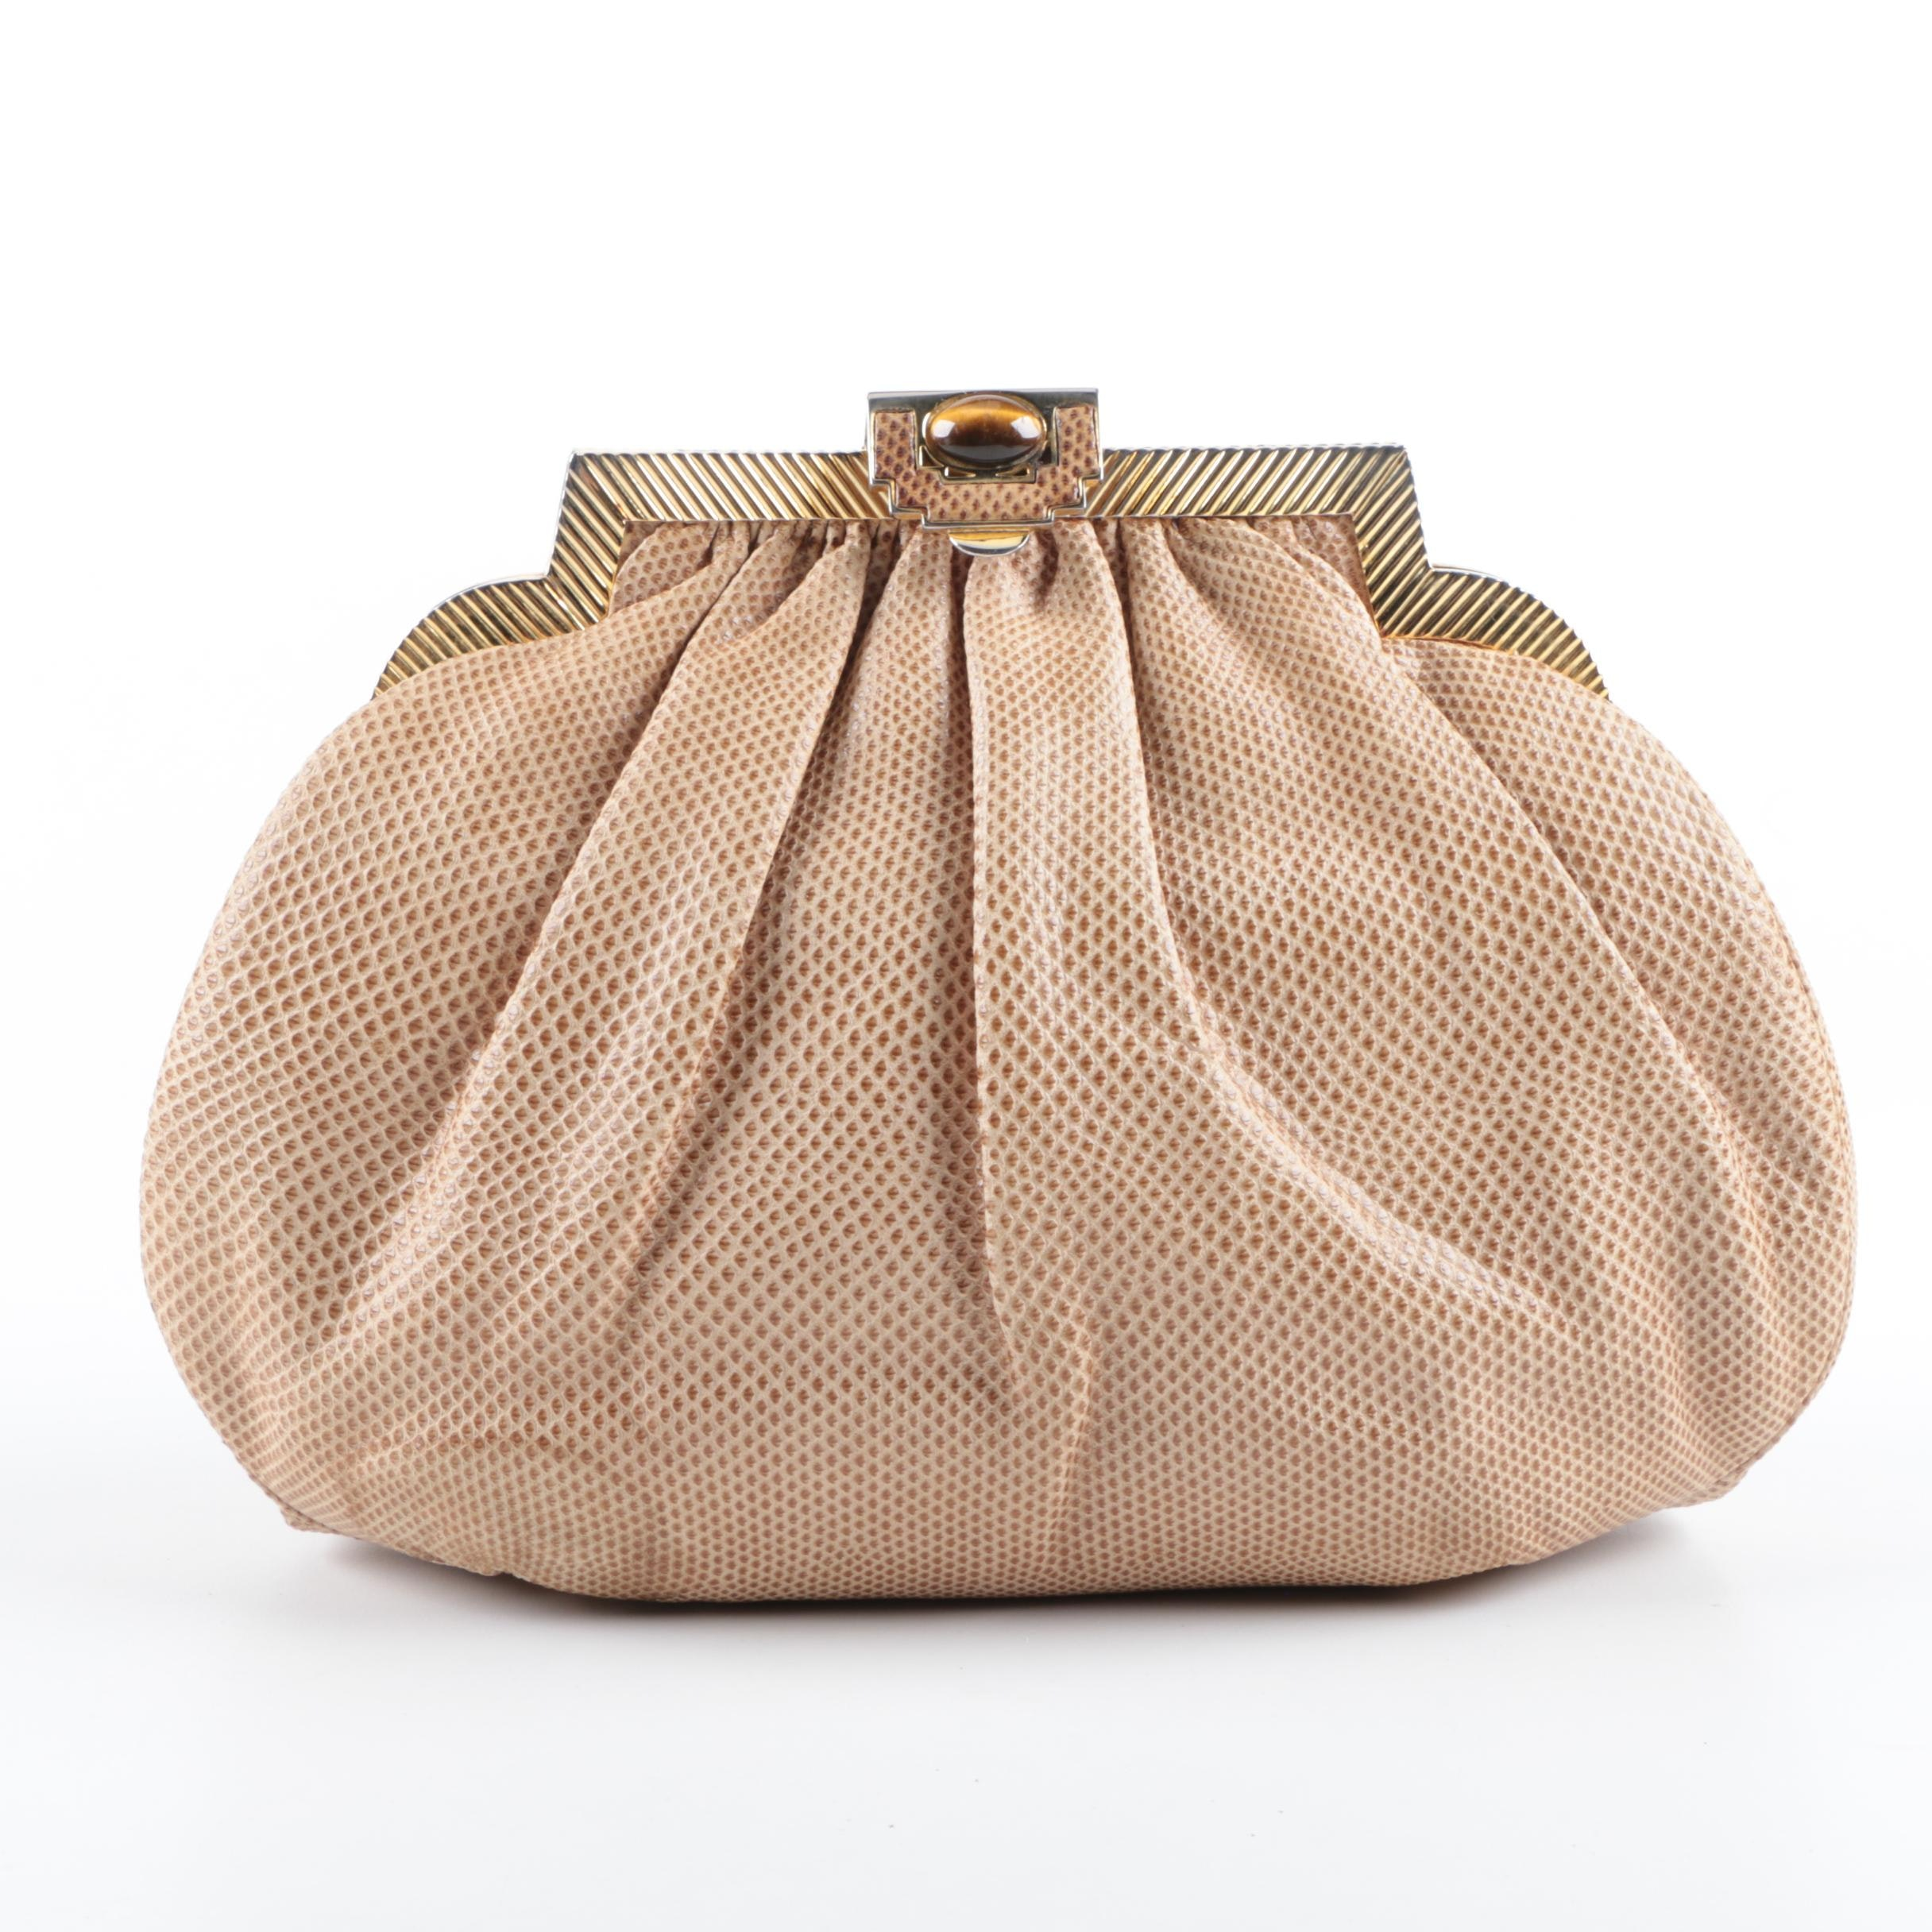 Judith Leiber Tan Lizard Evening Bag